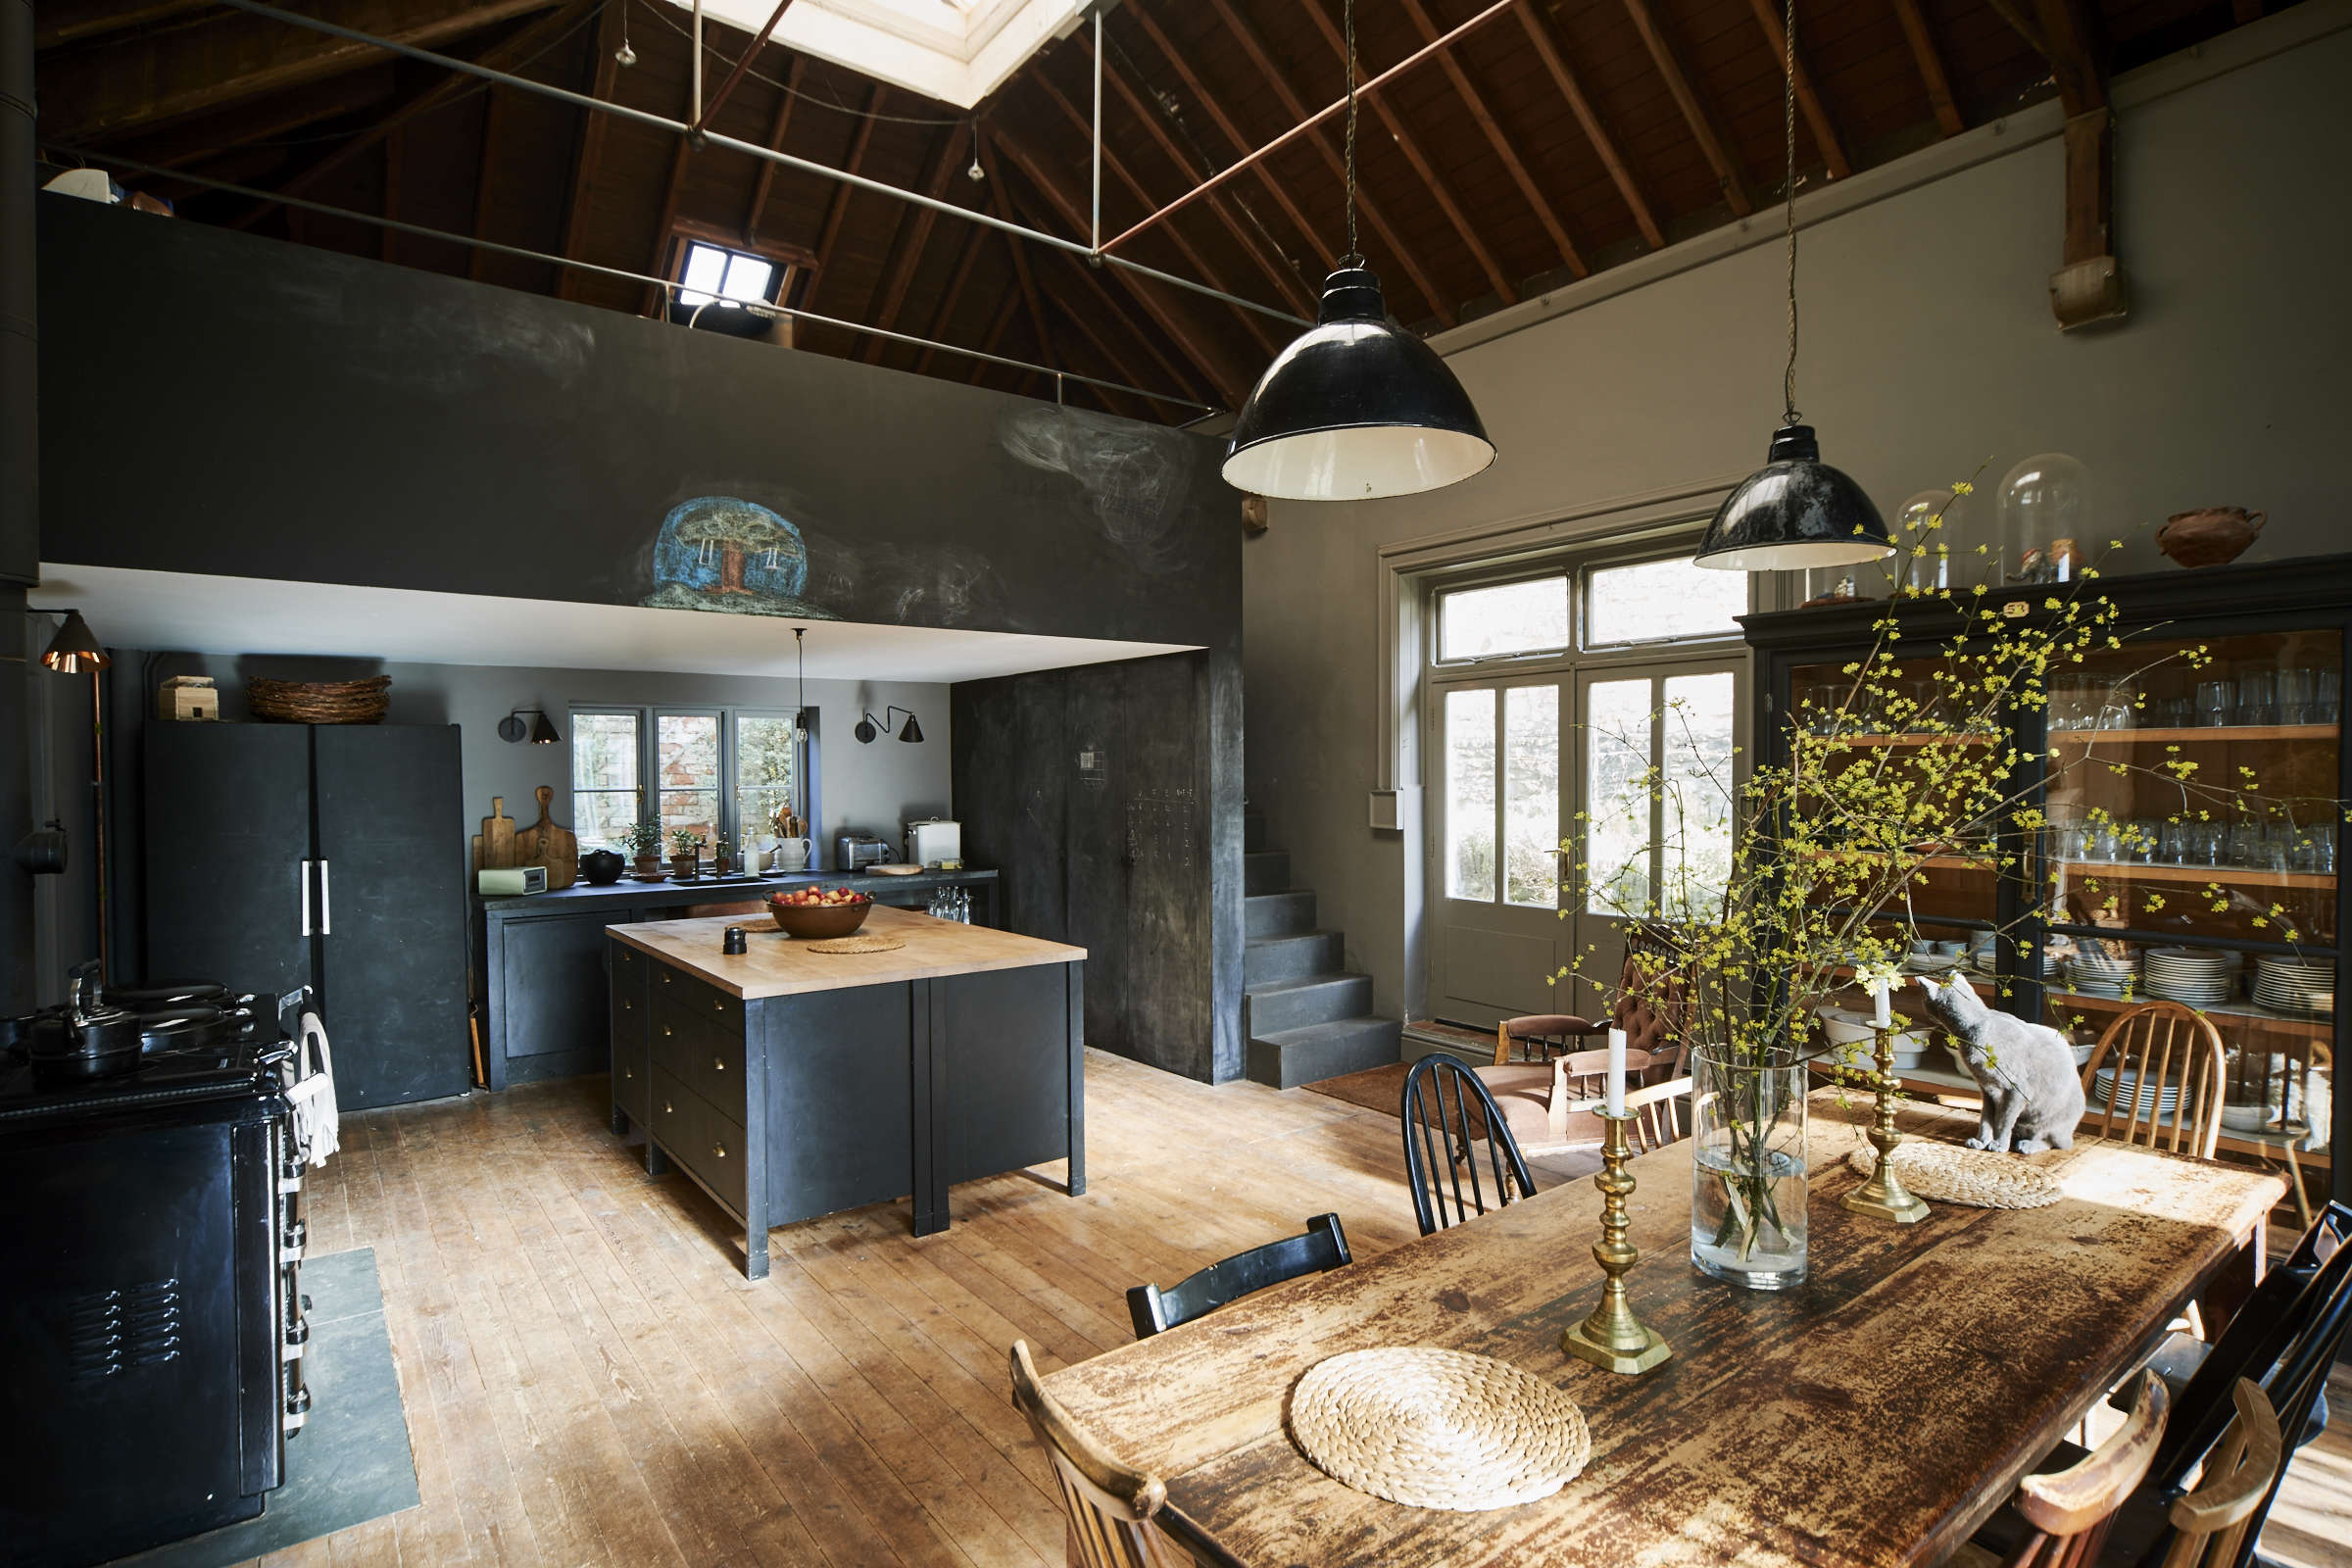 London theater designer Niki Turner's black and gray kitchen in a former billiard room in a historic house in Gloucestershire | Remodelista